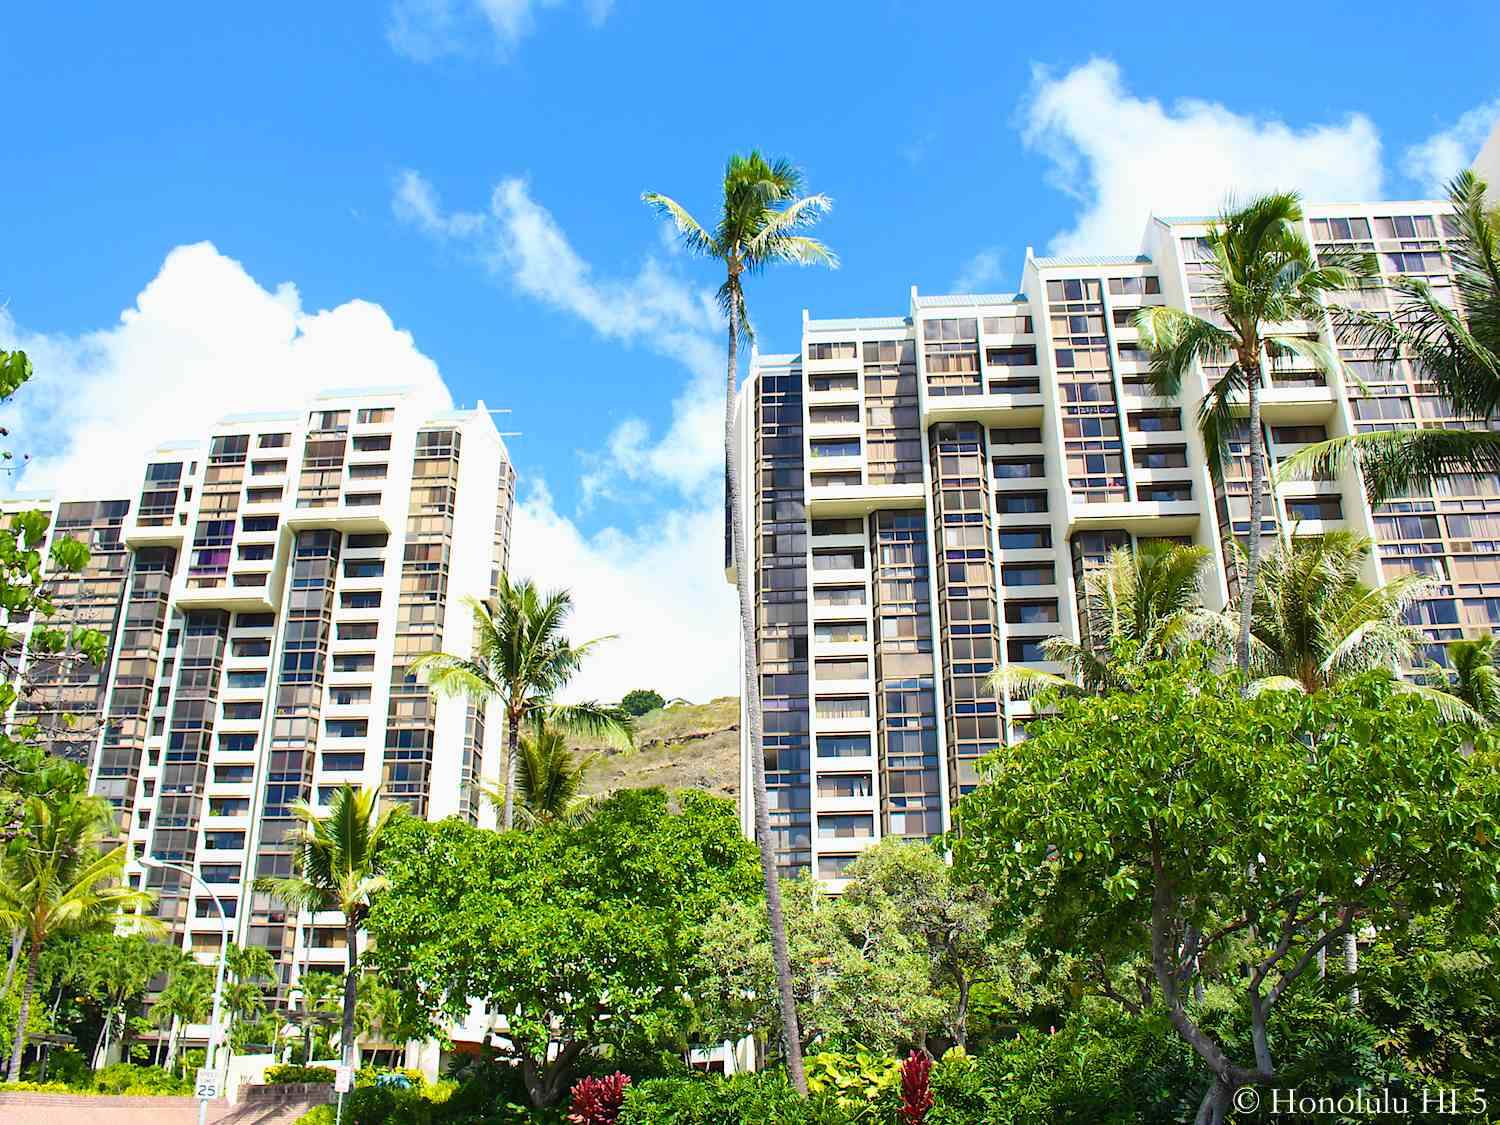 Mauna Luan Condos in Hawaii Kai Seen with Beautiful Lush Green in Front of These Two High-rise Towers